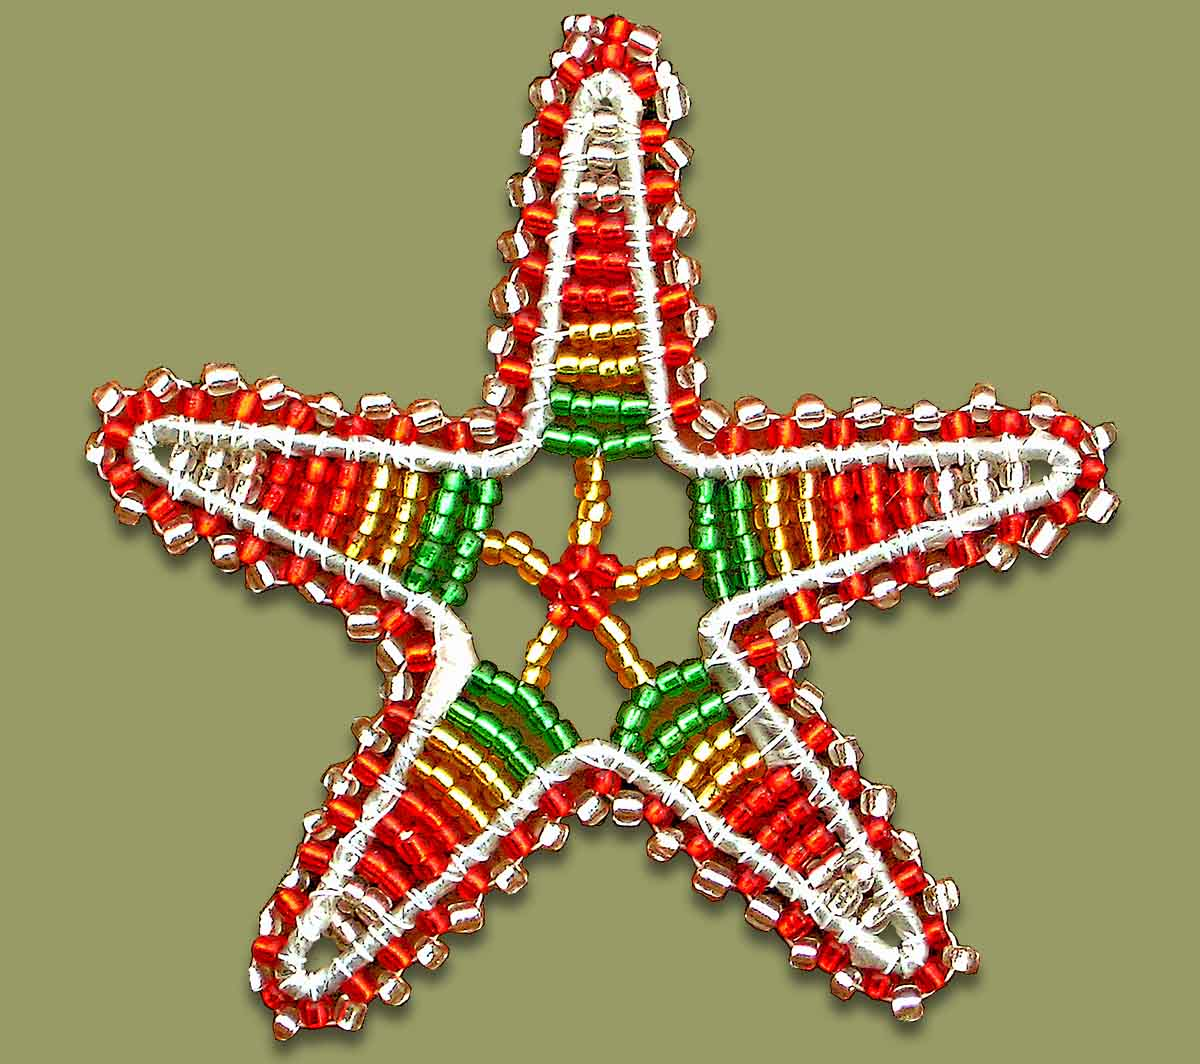 south_africa_christmas_tree_ornaments rc2919922a52d4efb983827b8a647b22b_x7s2y_8byvr_512 african christmas decorations beaded star6 - African Christmas